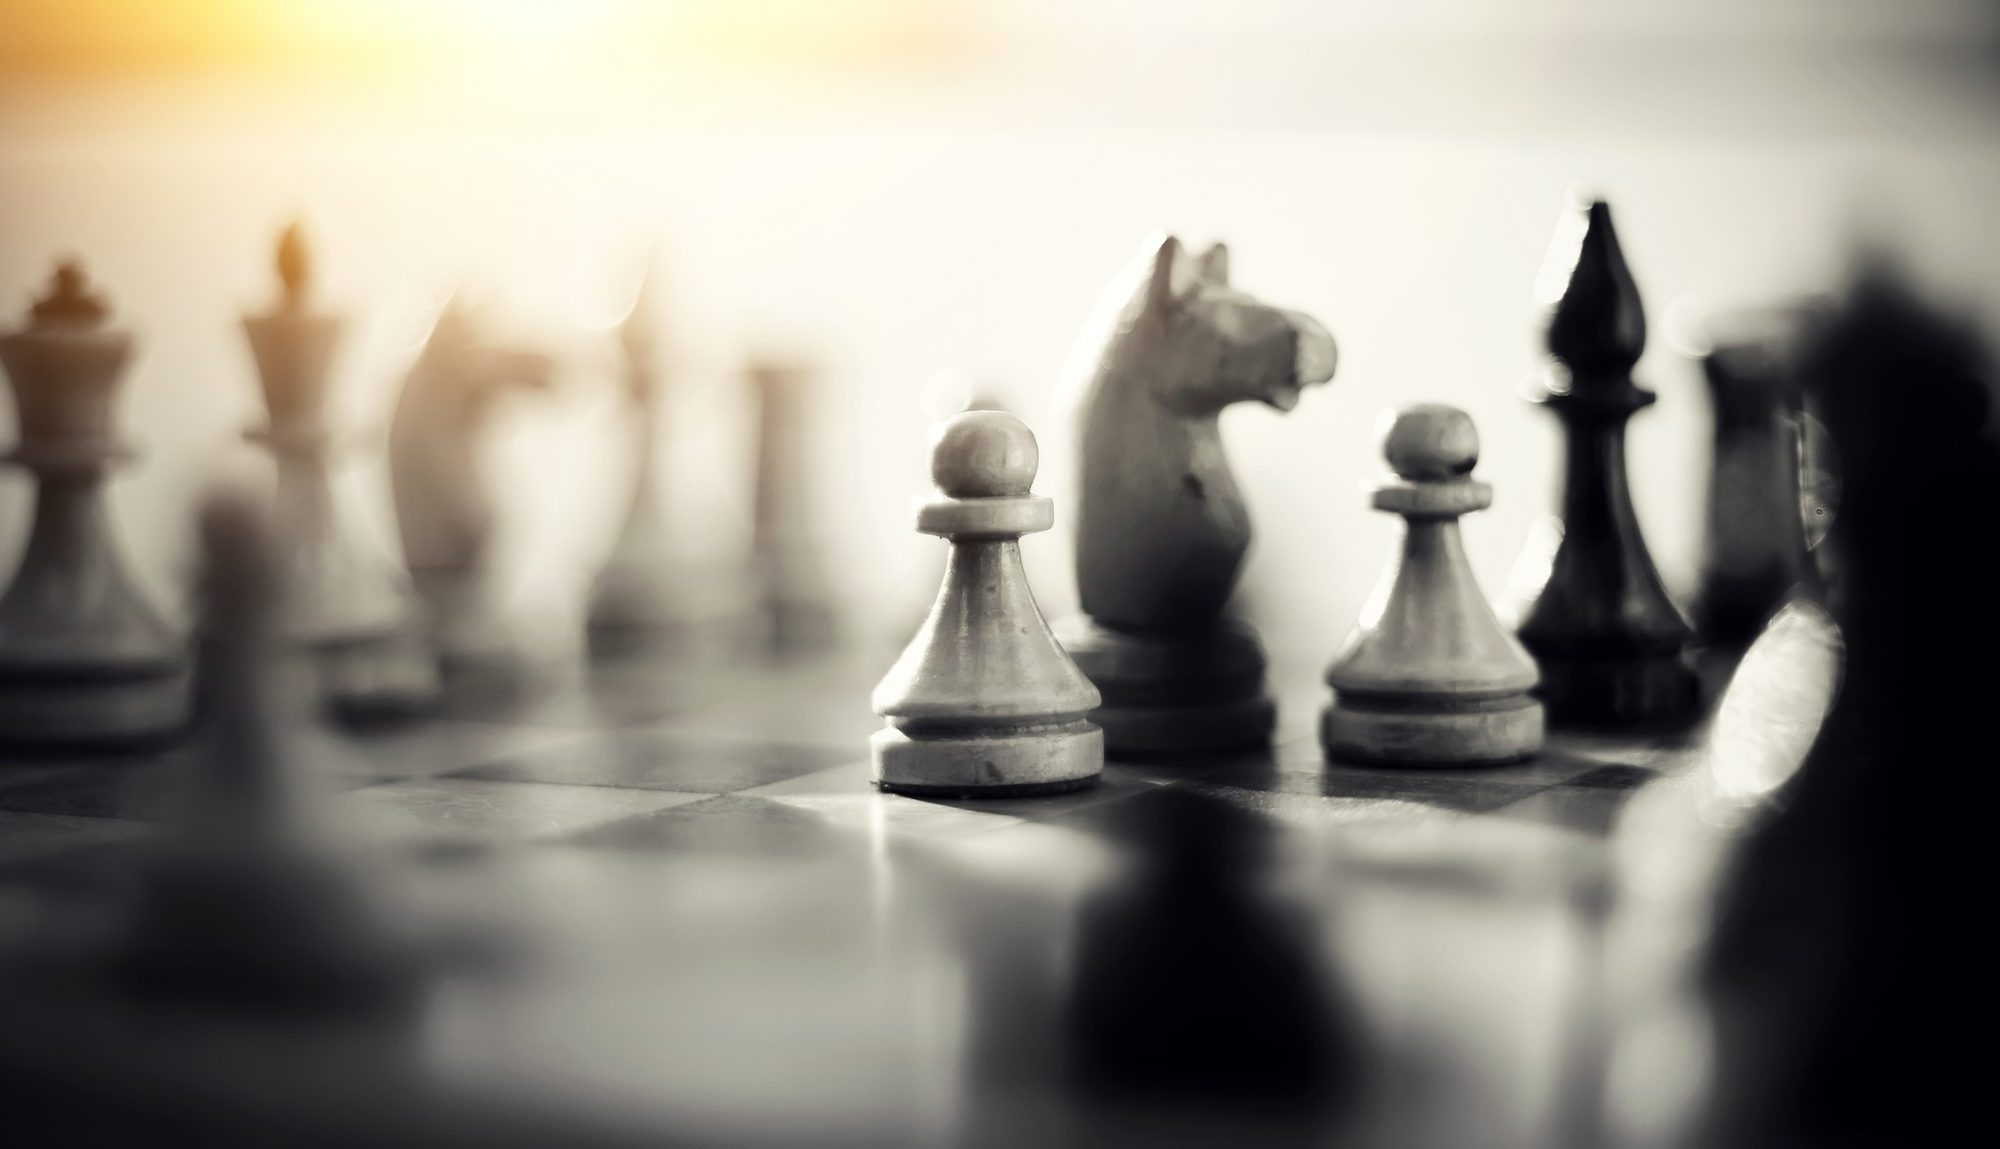 Close up of a black and white chess game focusing on the pawns and the knights is symbolic of planning, strategy, and challenge.